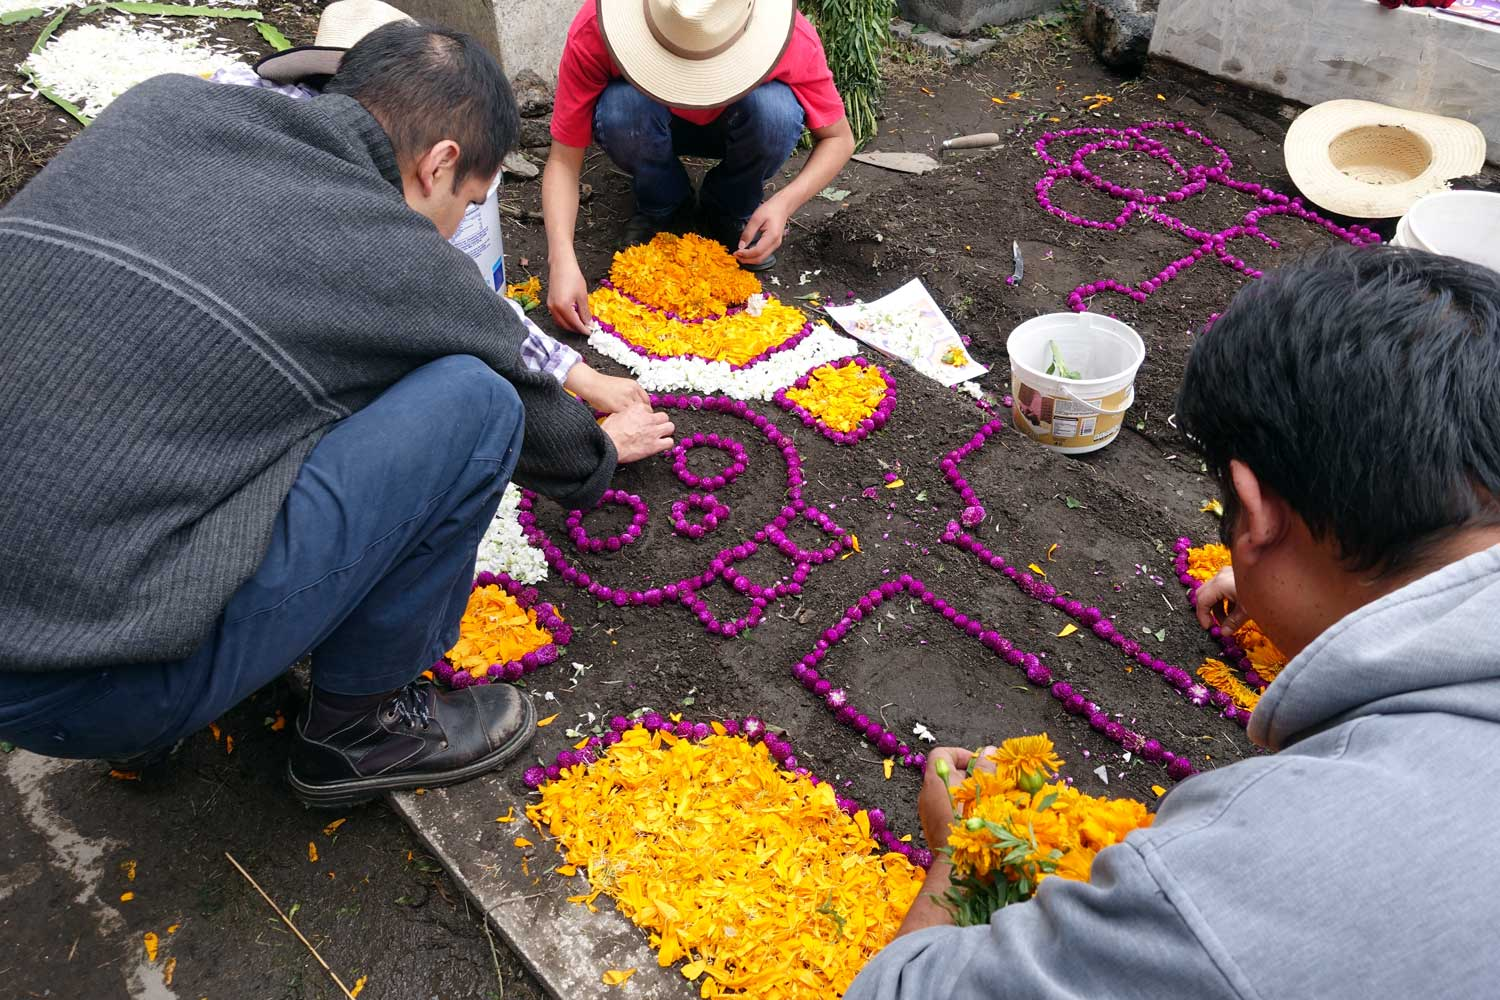 Relatives carefully begin the process of decorating the grave of an ancestor